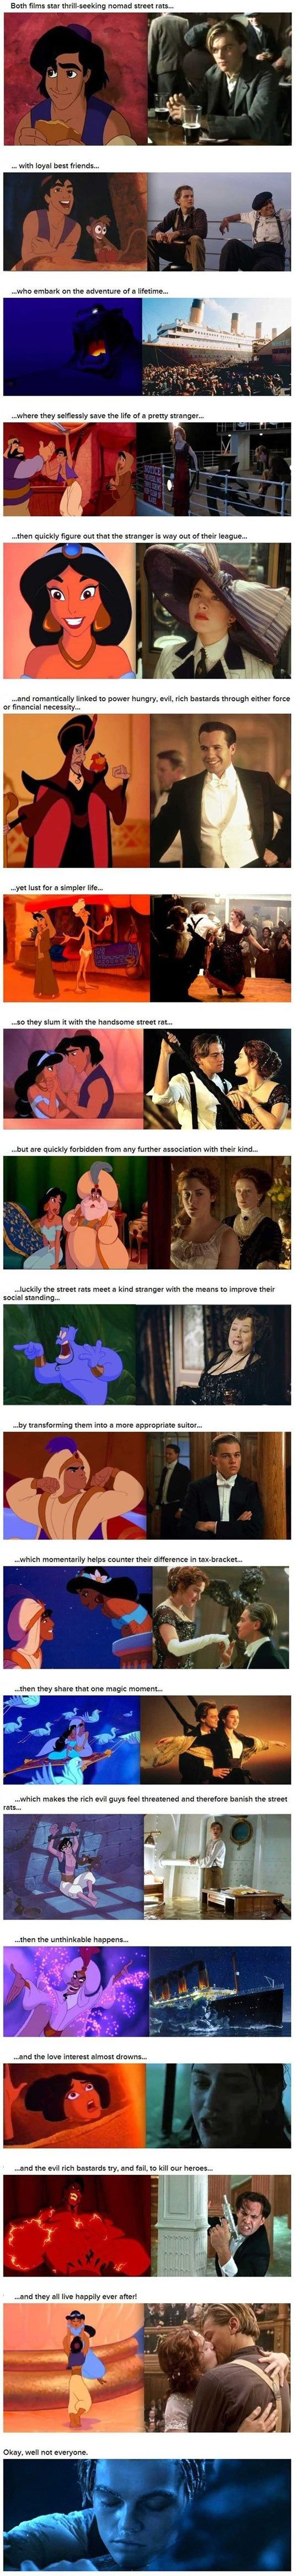 Aladdin vs Titanic - funny pictures - funny photos - funny images - funny pics - funny quotes - #lol #humor #funny